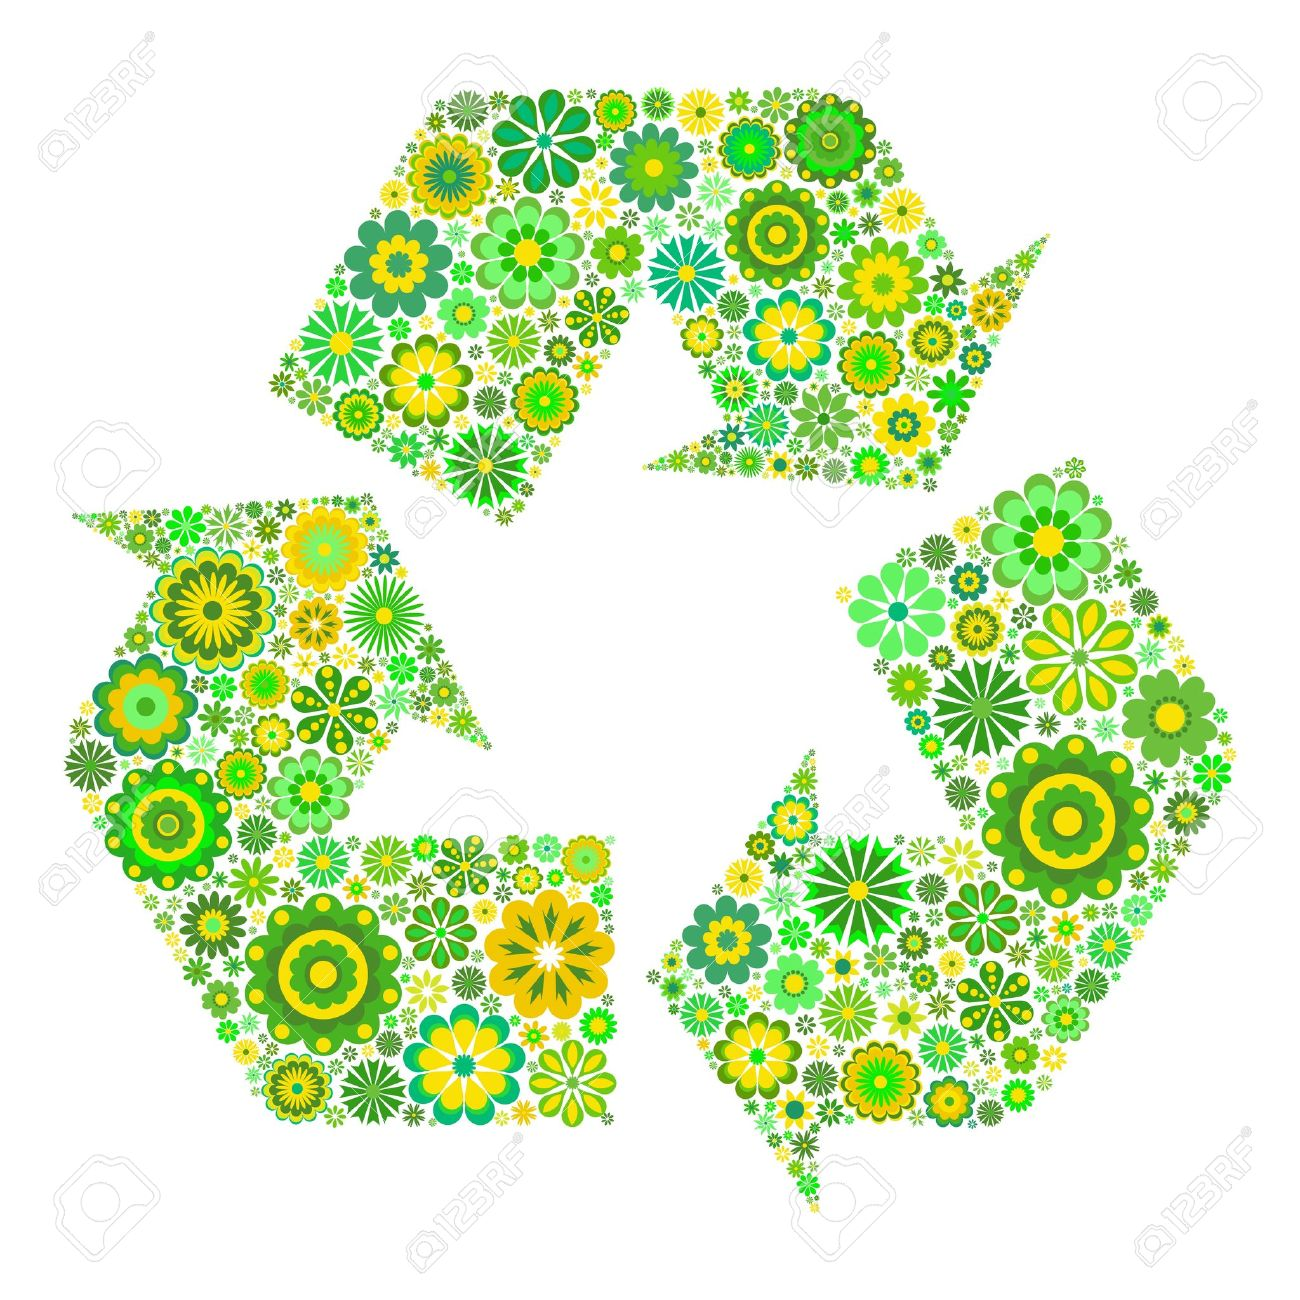 13172254-flowery-recycling-symbol-isolated-on-white-background